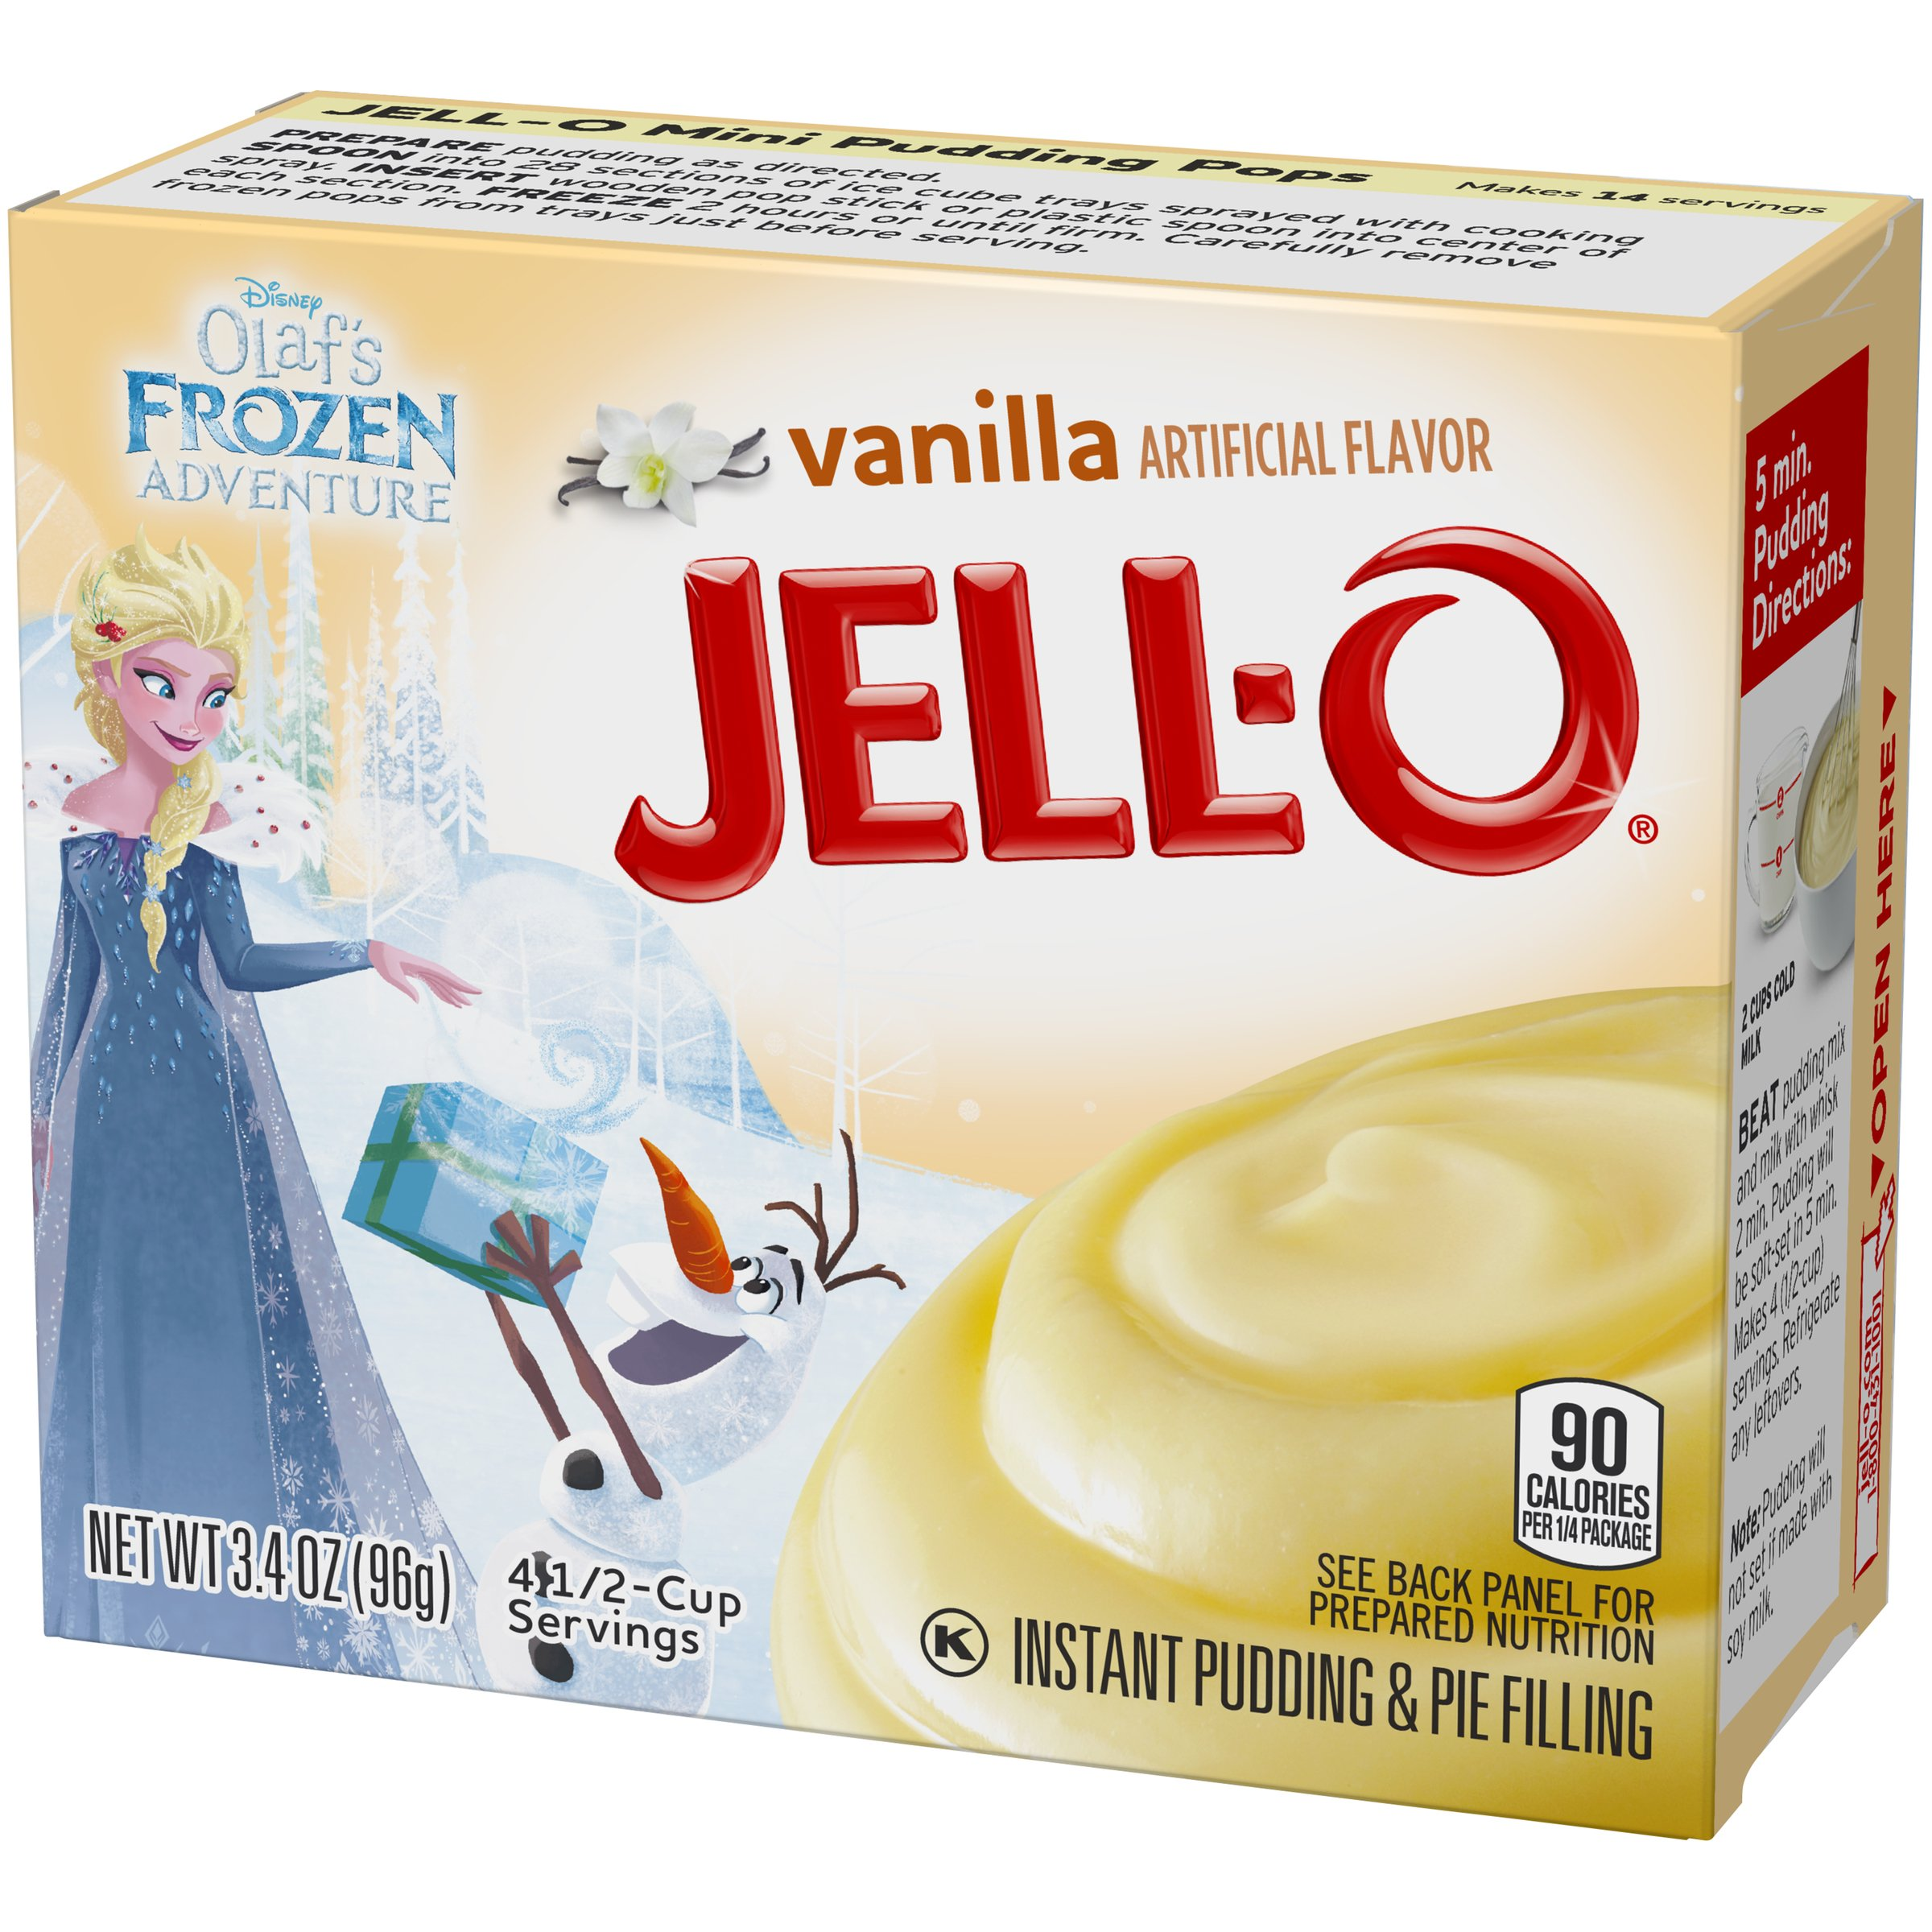 Jell-O Instant Vanilla Pudding & Pie Filling, 3.4 oz Box by Jell-O (Image #7)